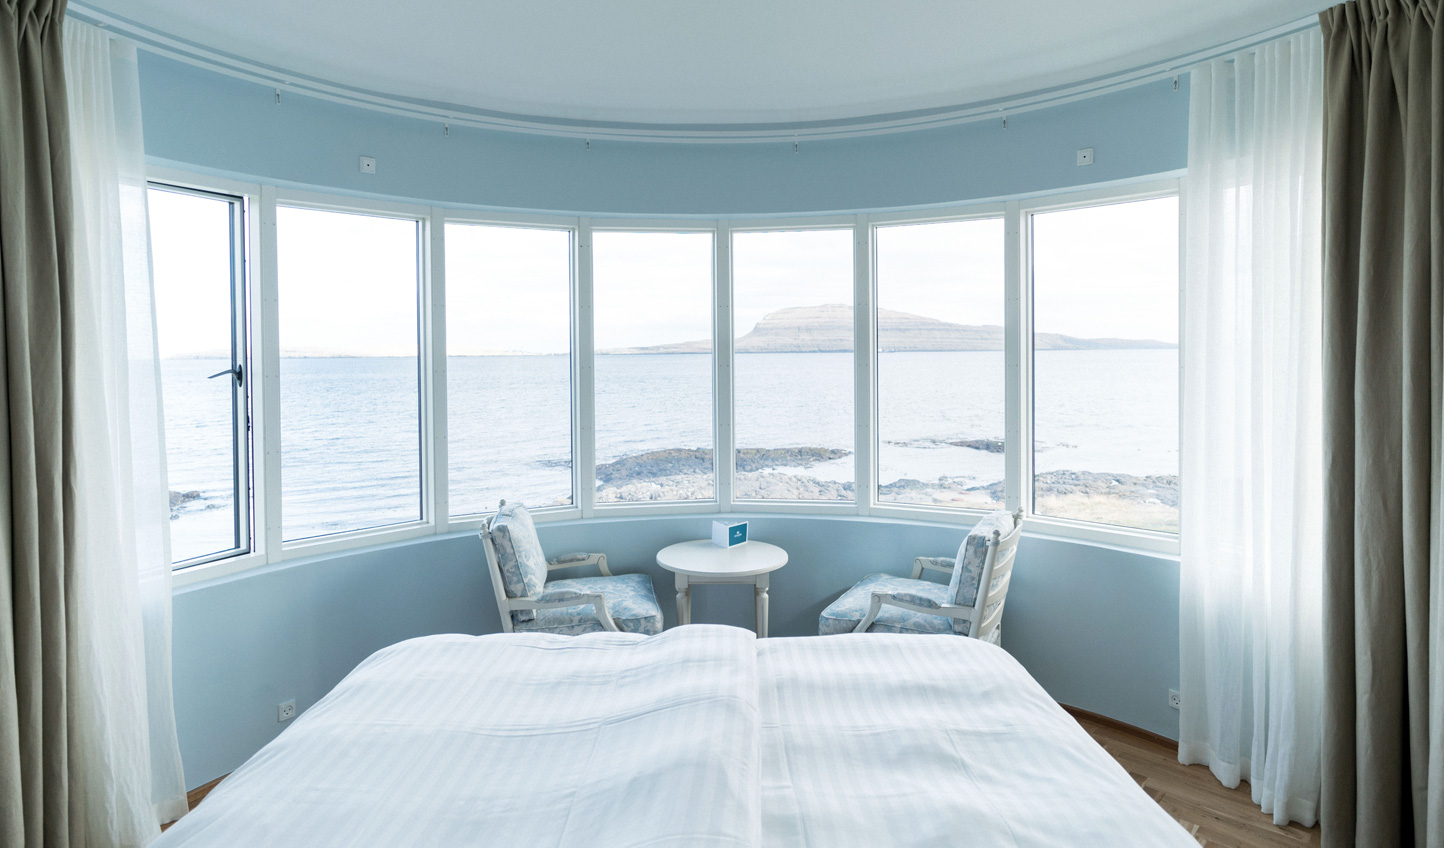 The Commodore Suite boasts an unrivalled view to wake up to